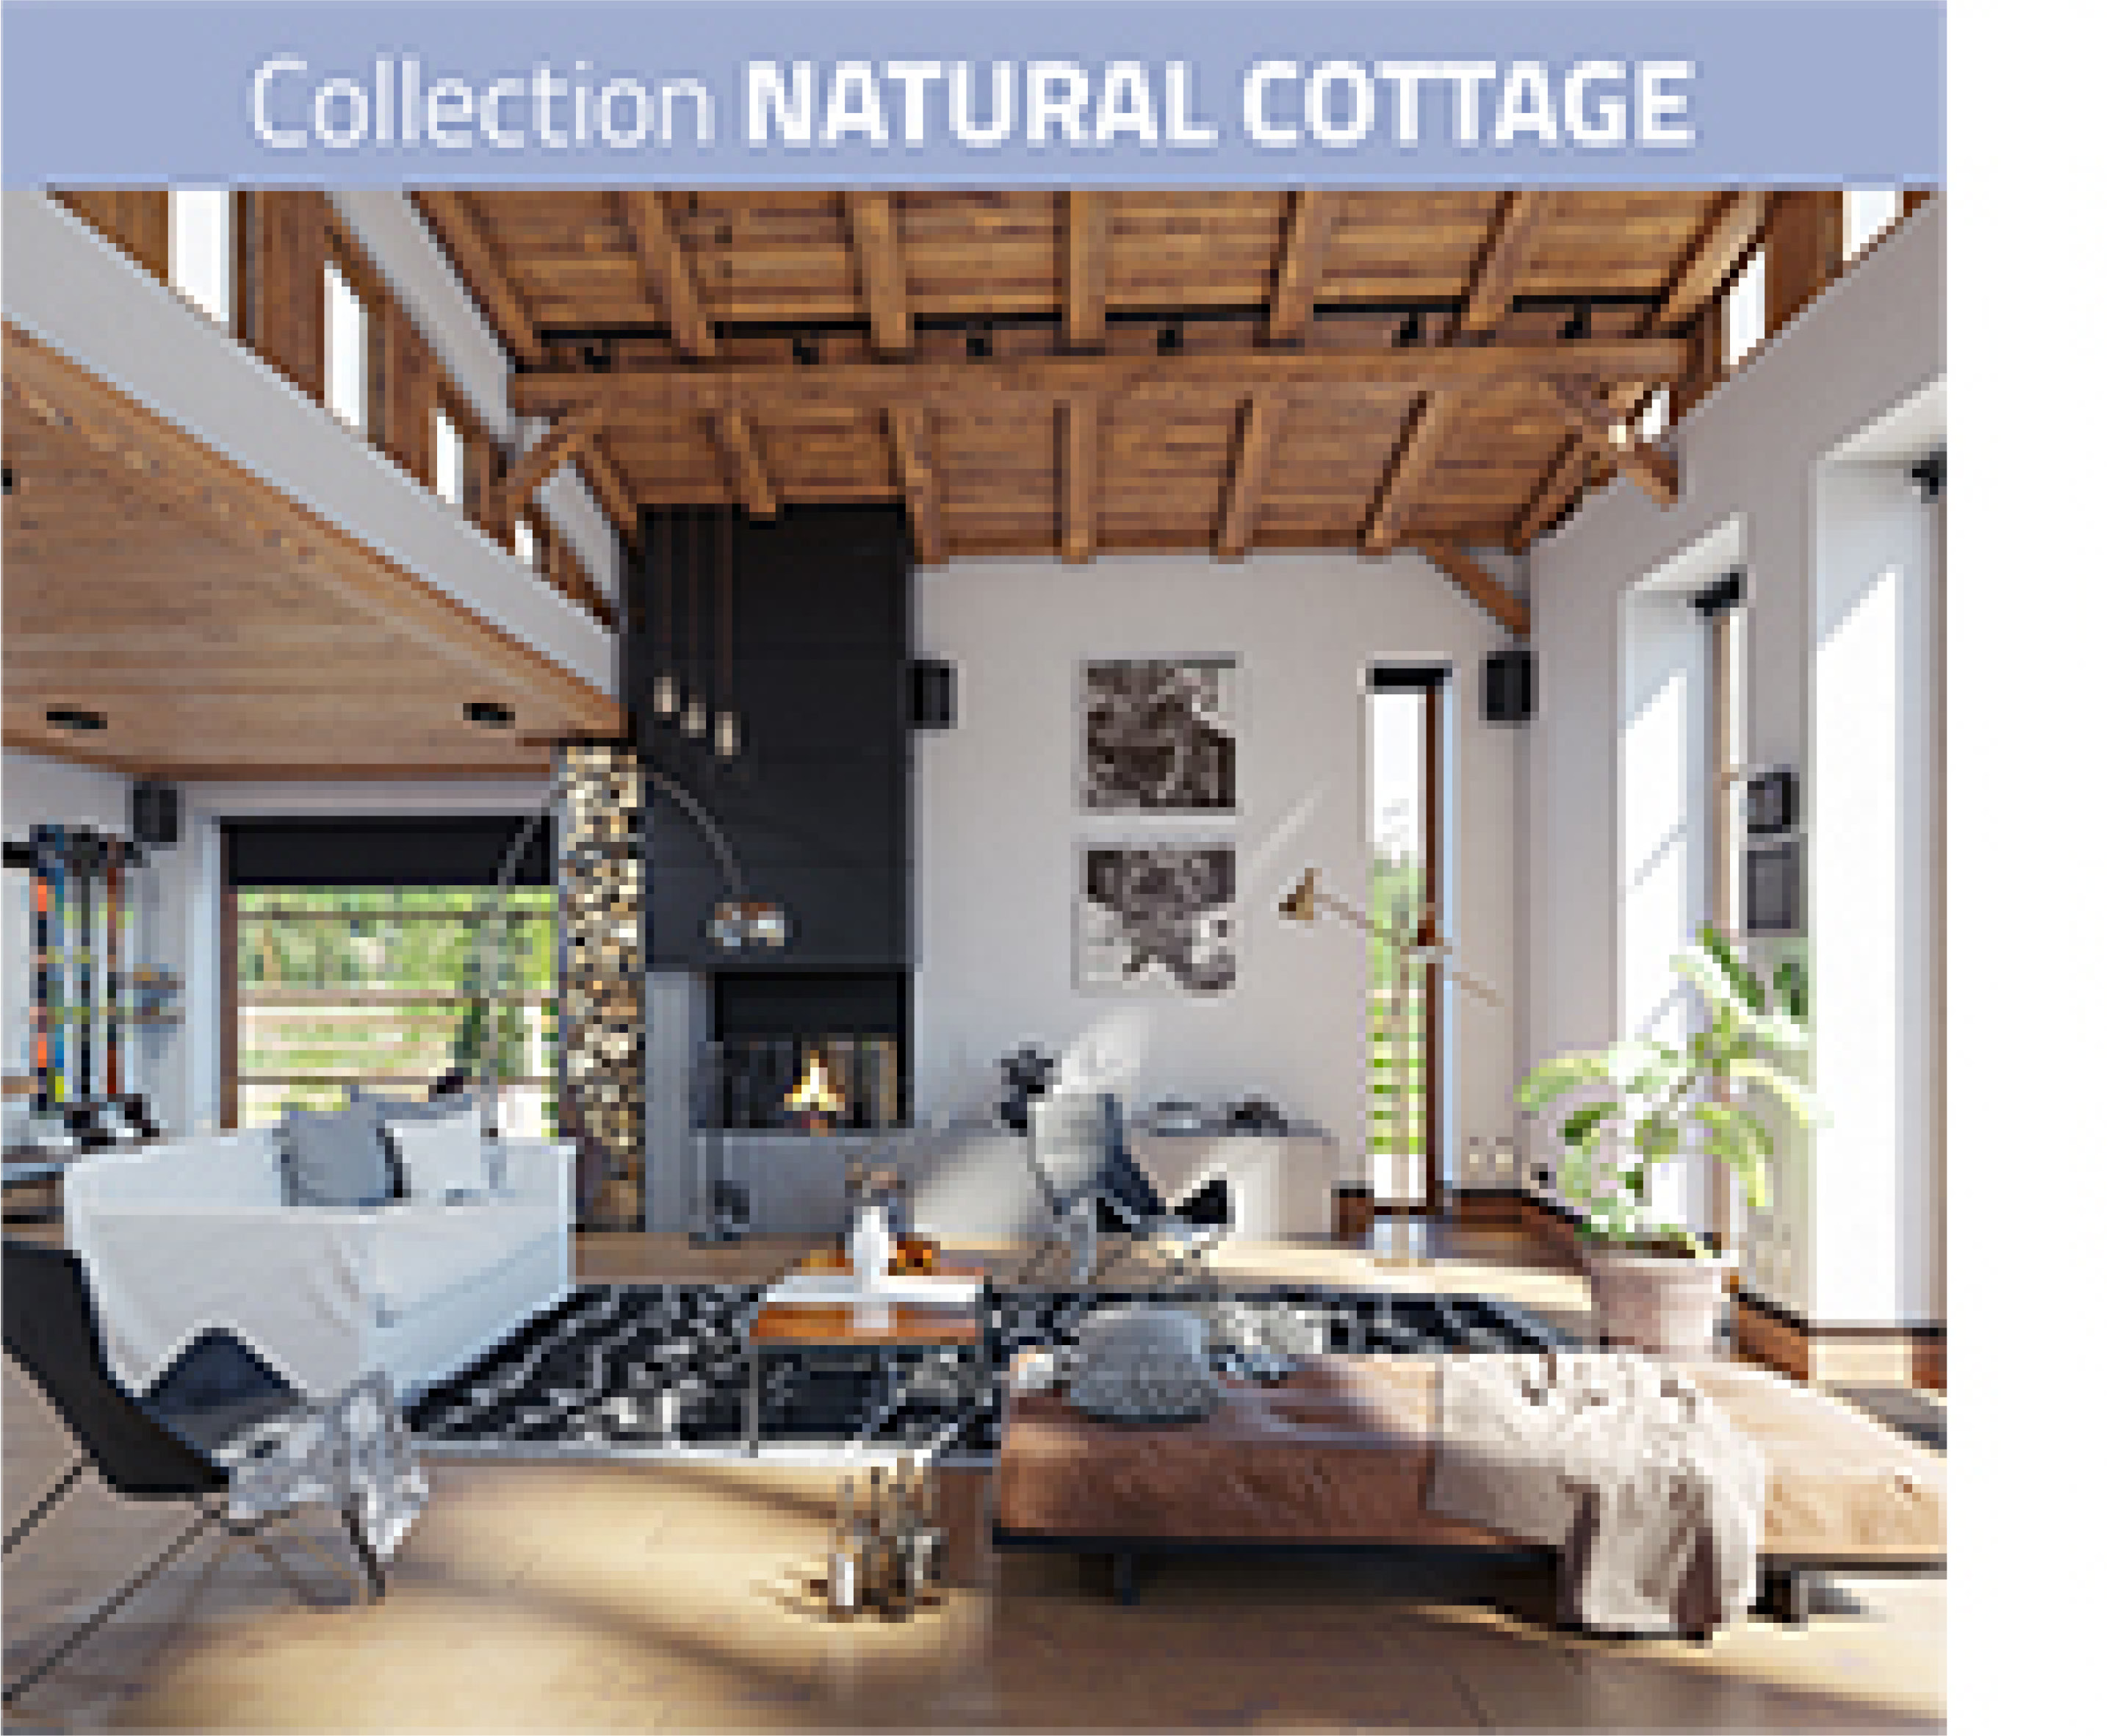 COLLECTION NATURAL COTTAGE